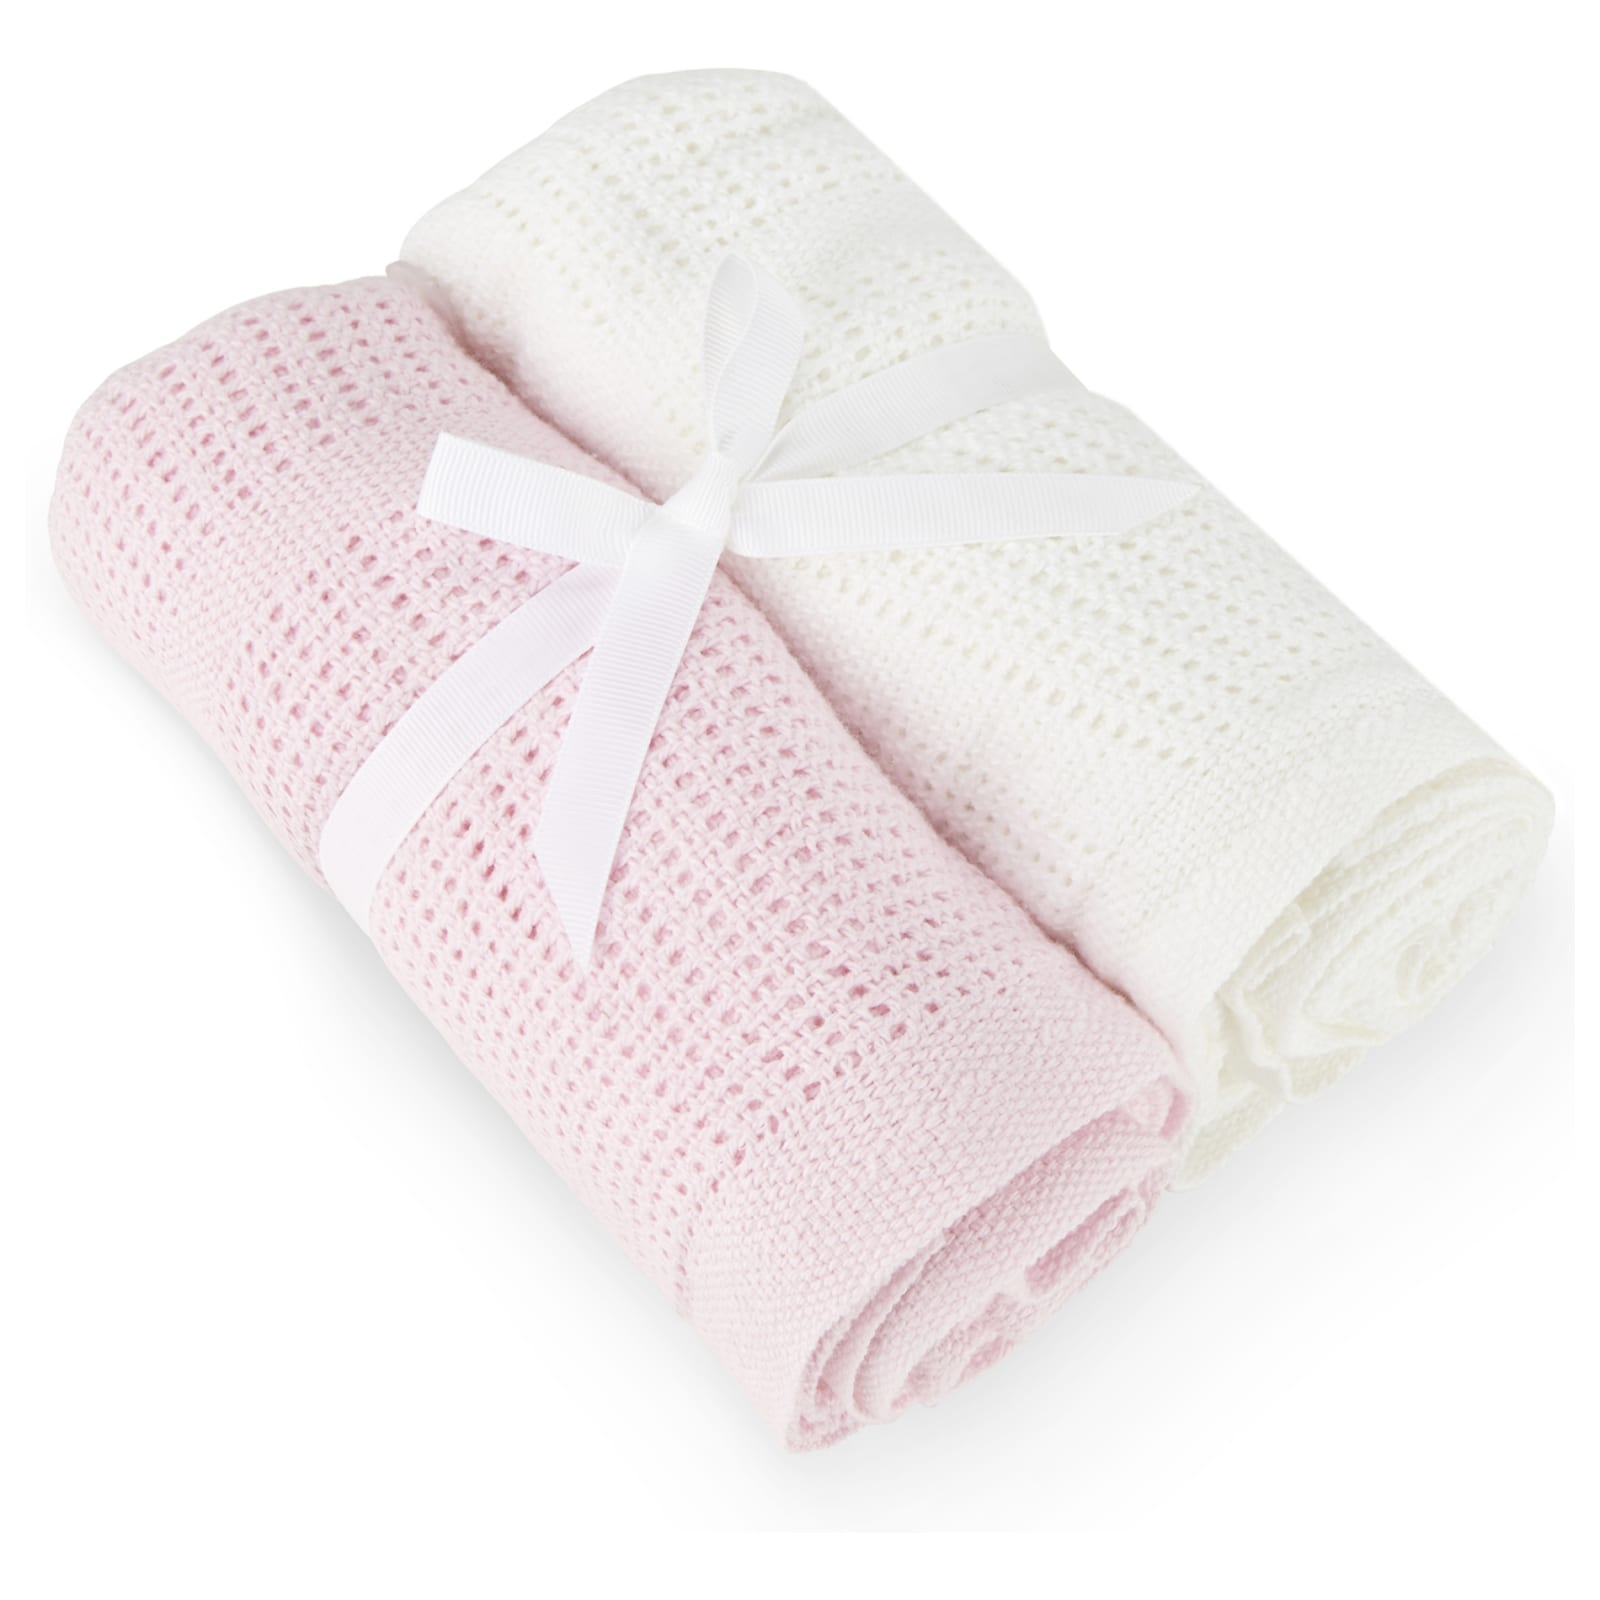 2 Pack Cellular Blanket – Pink and White product image